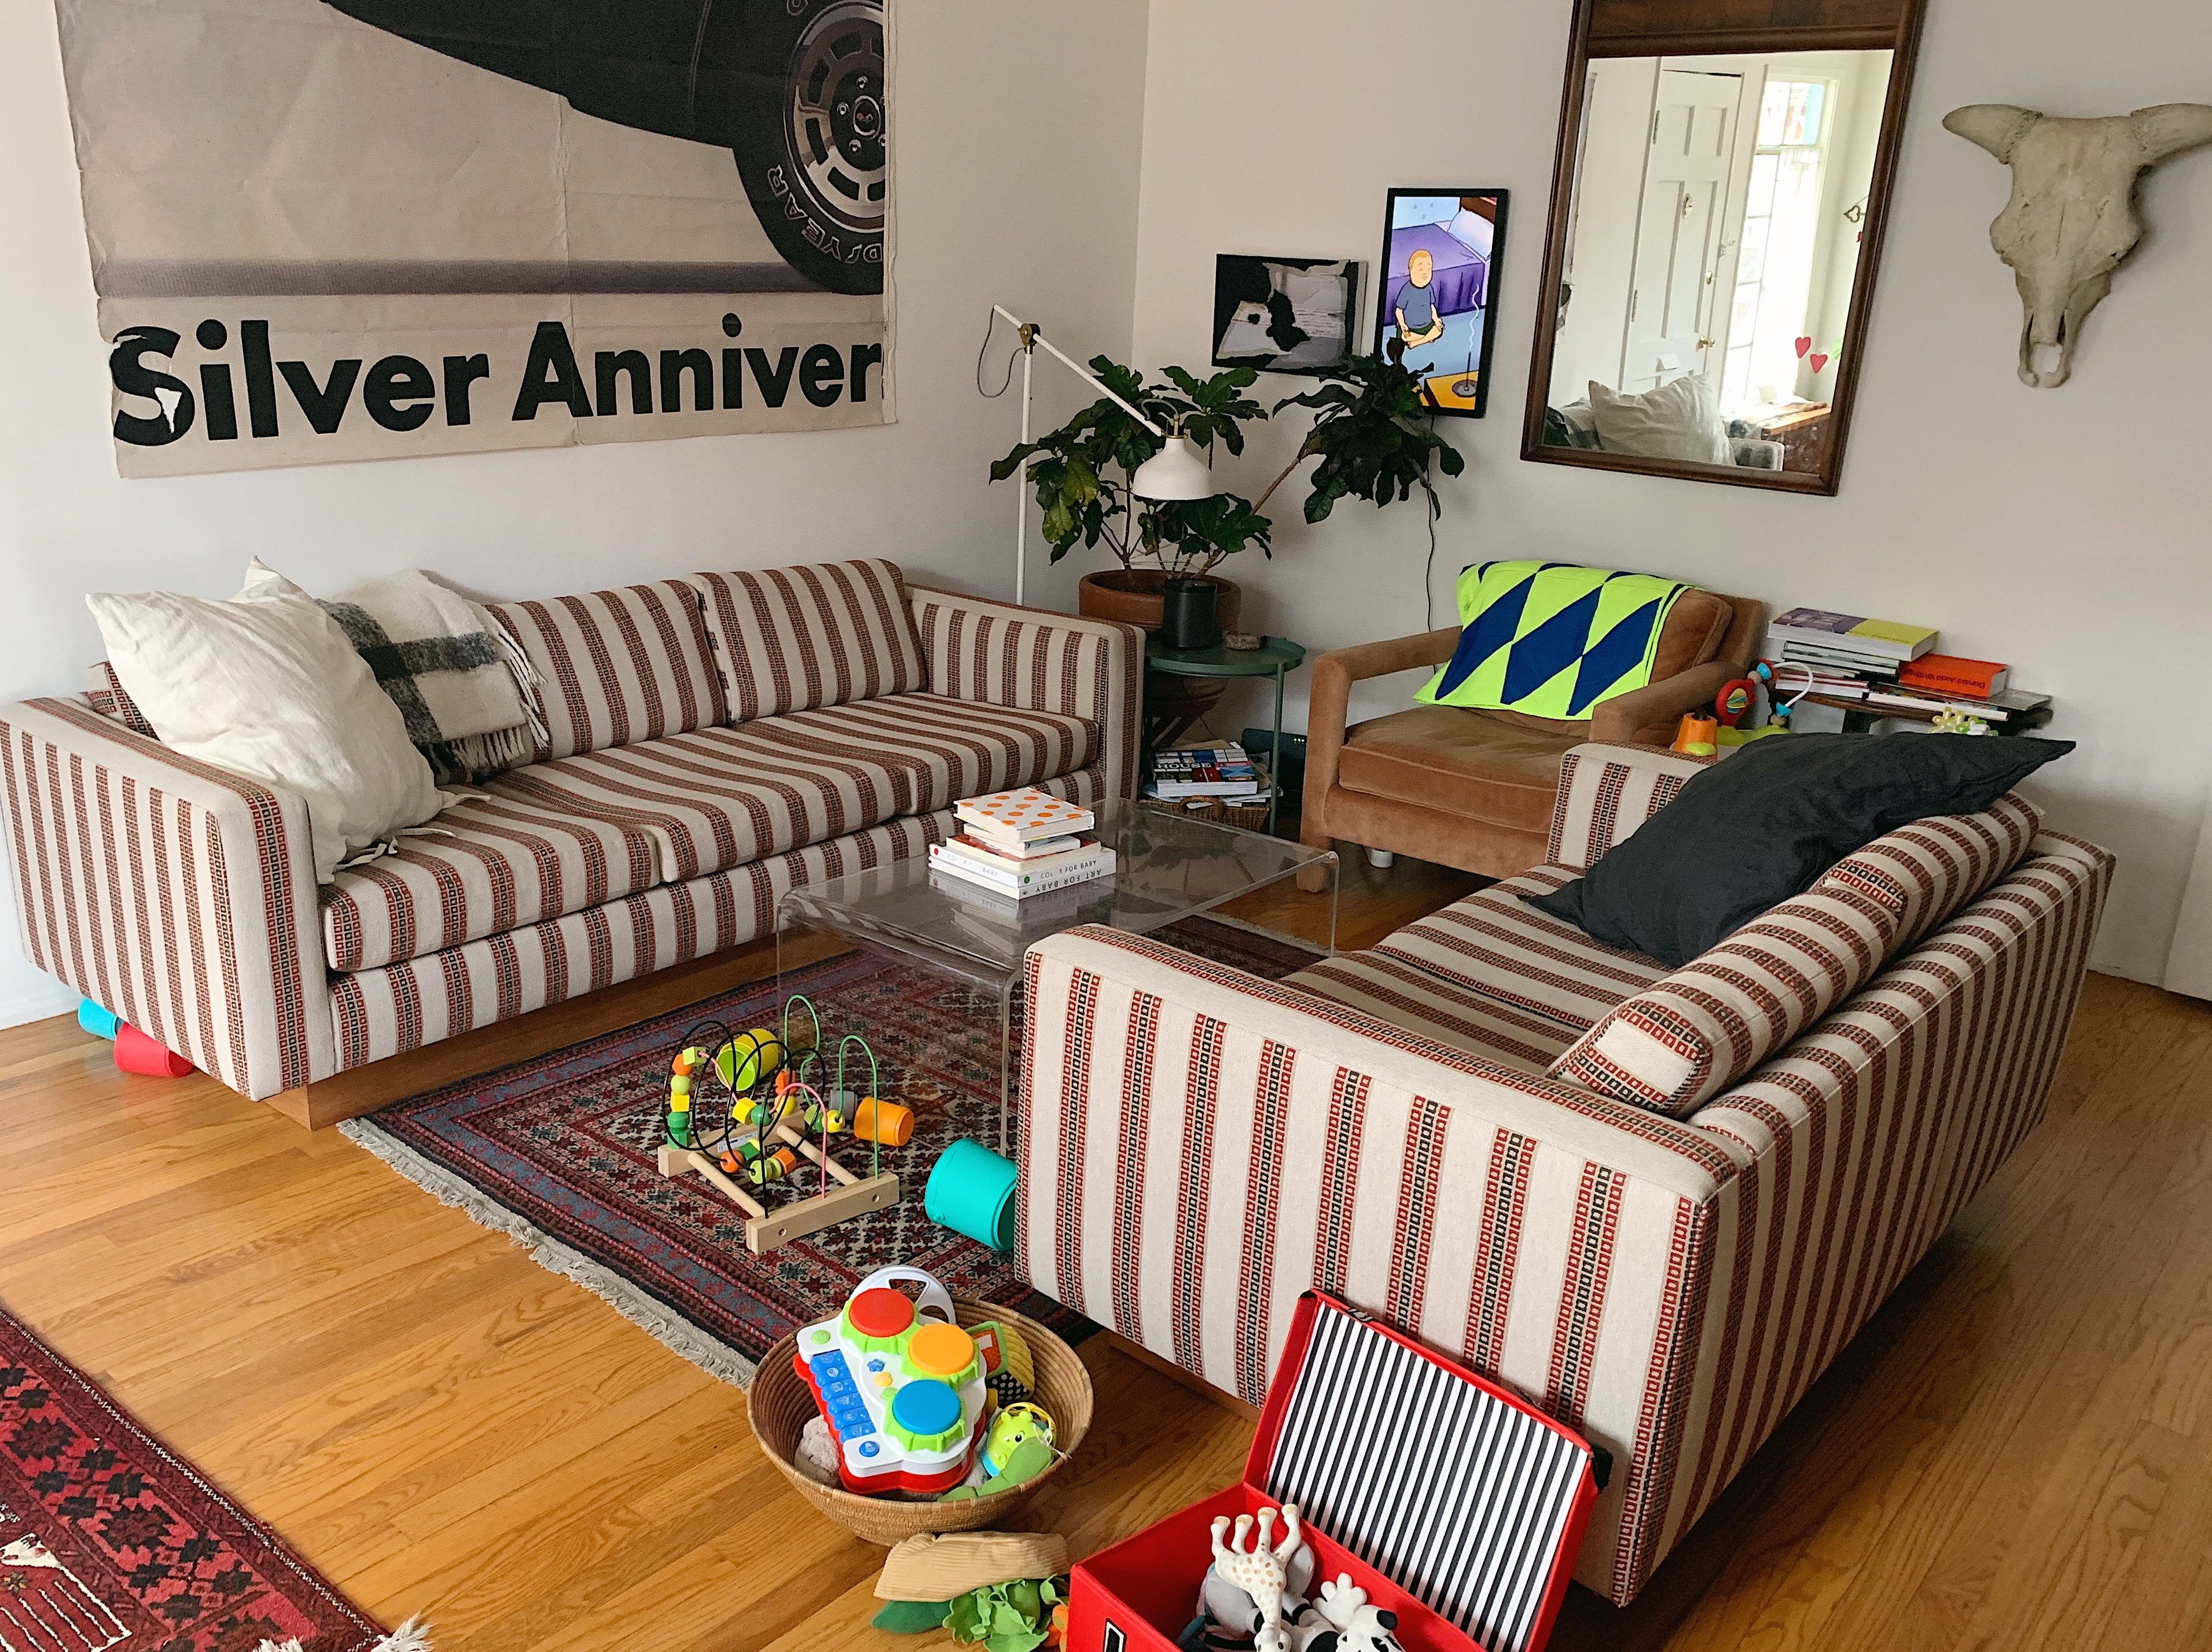 Two sofas in a striped red, green, and tan pattern face each other, with a coffee table in the middle, in a large room. A large poster hangs on the wall along with a mirror, two picture frames, and a steer skull. Baby toys are on the floor, near the rug.